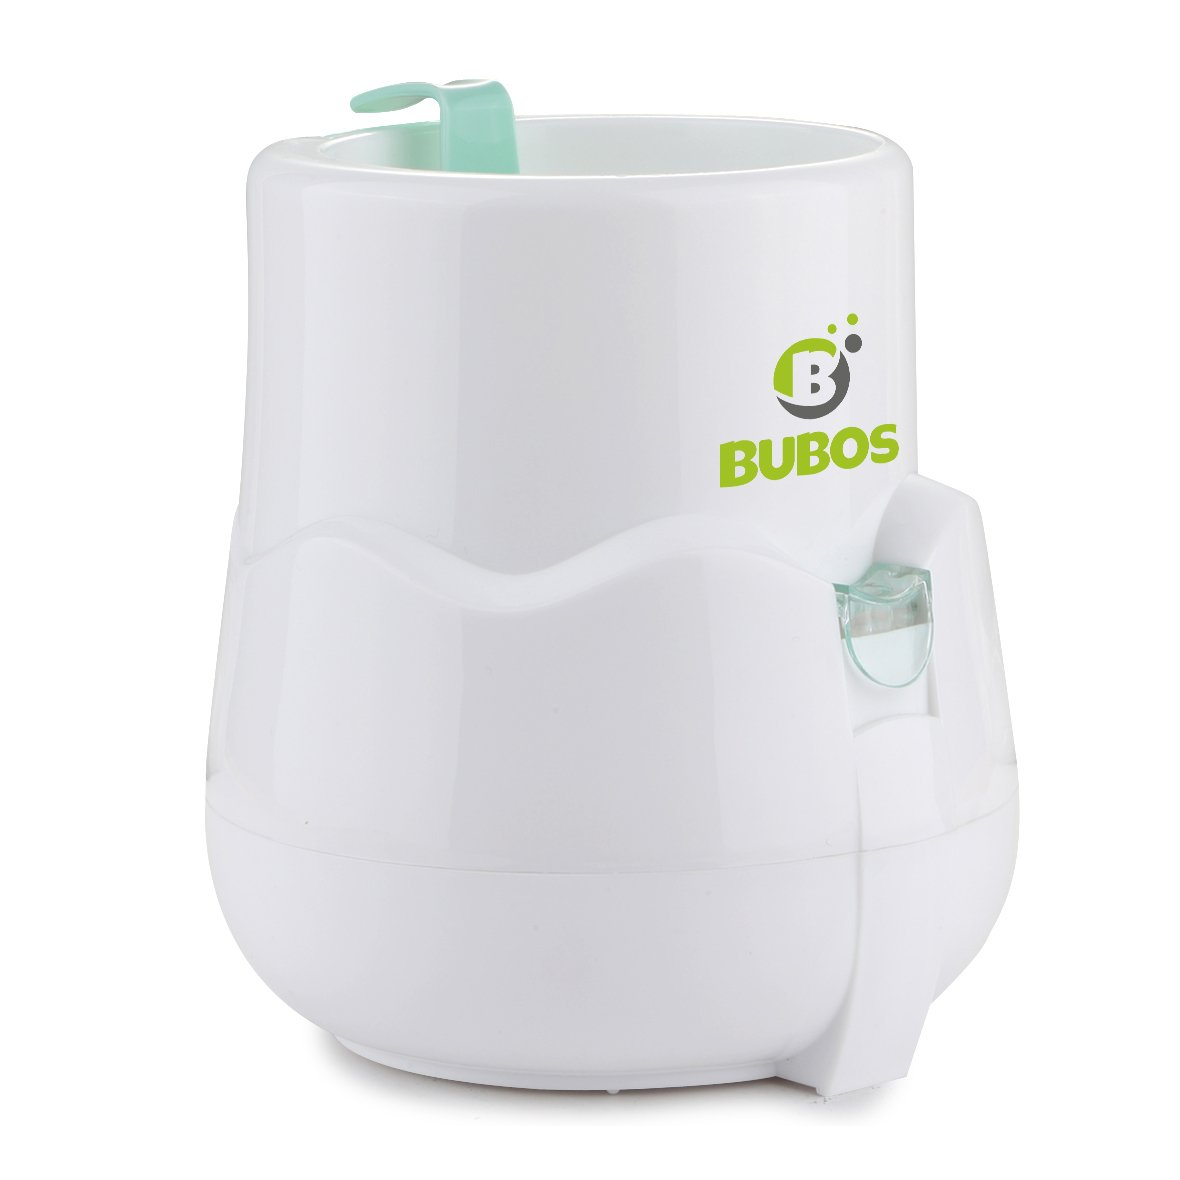 Bubos Smart Fast Heating Baby Bottle Warmer by B Bubos